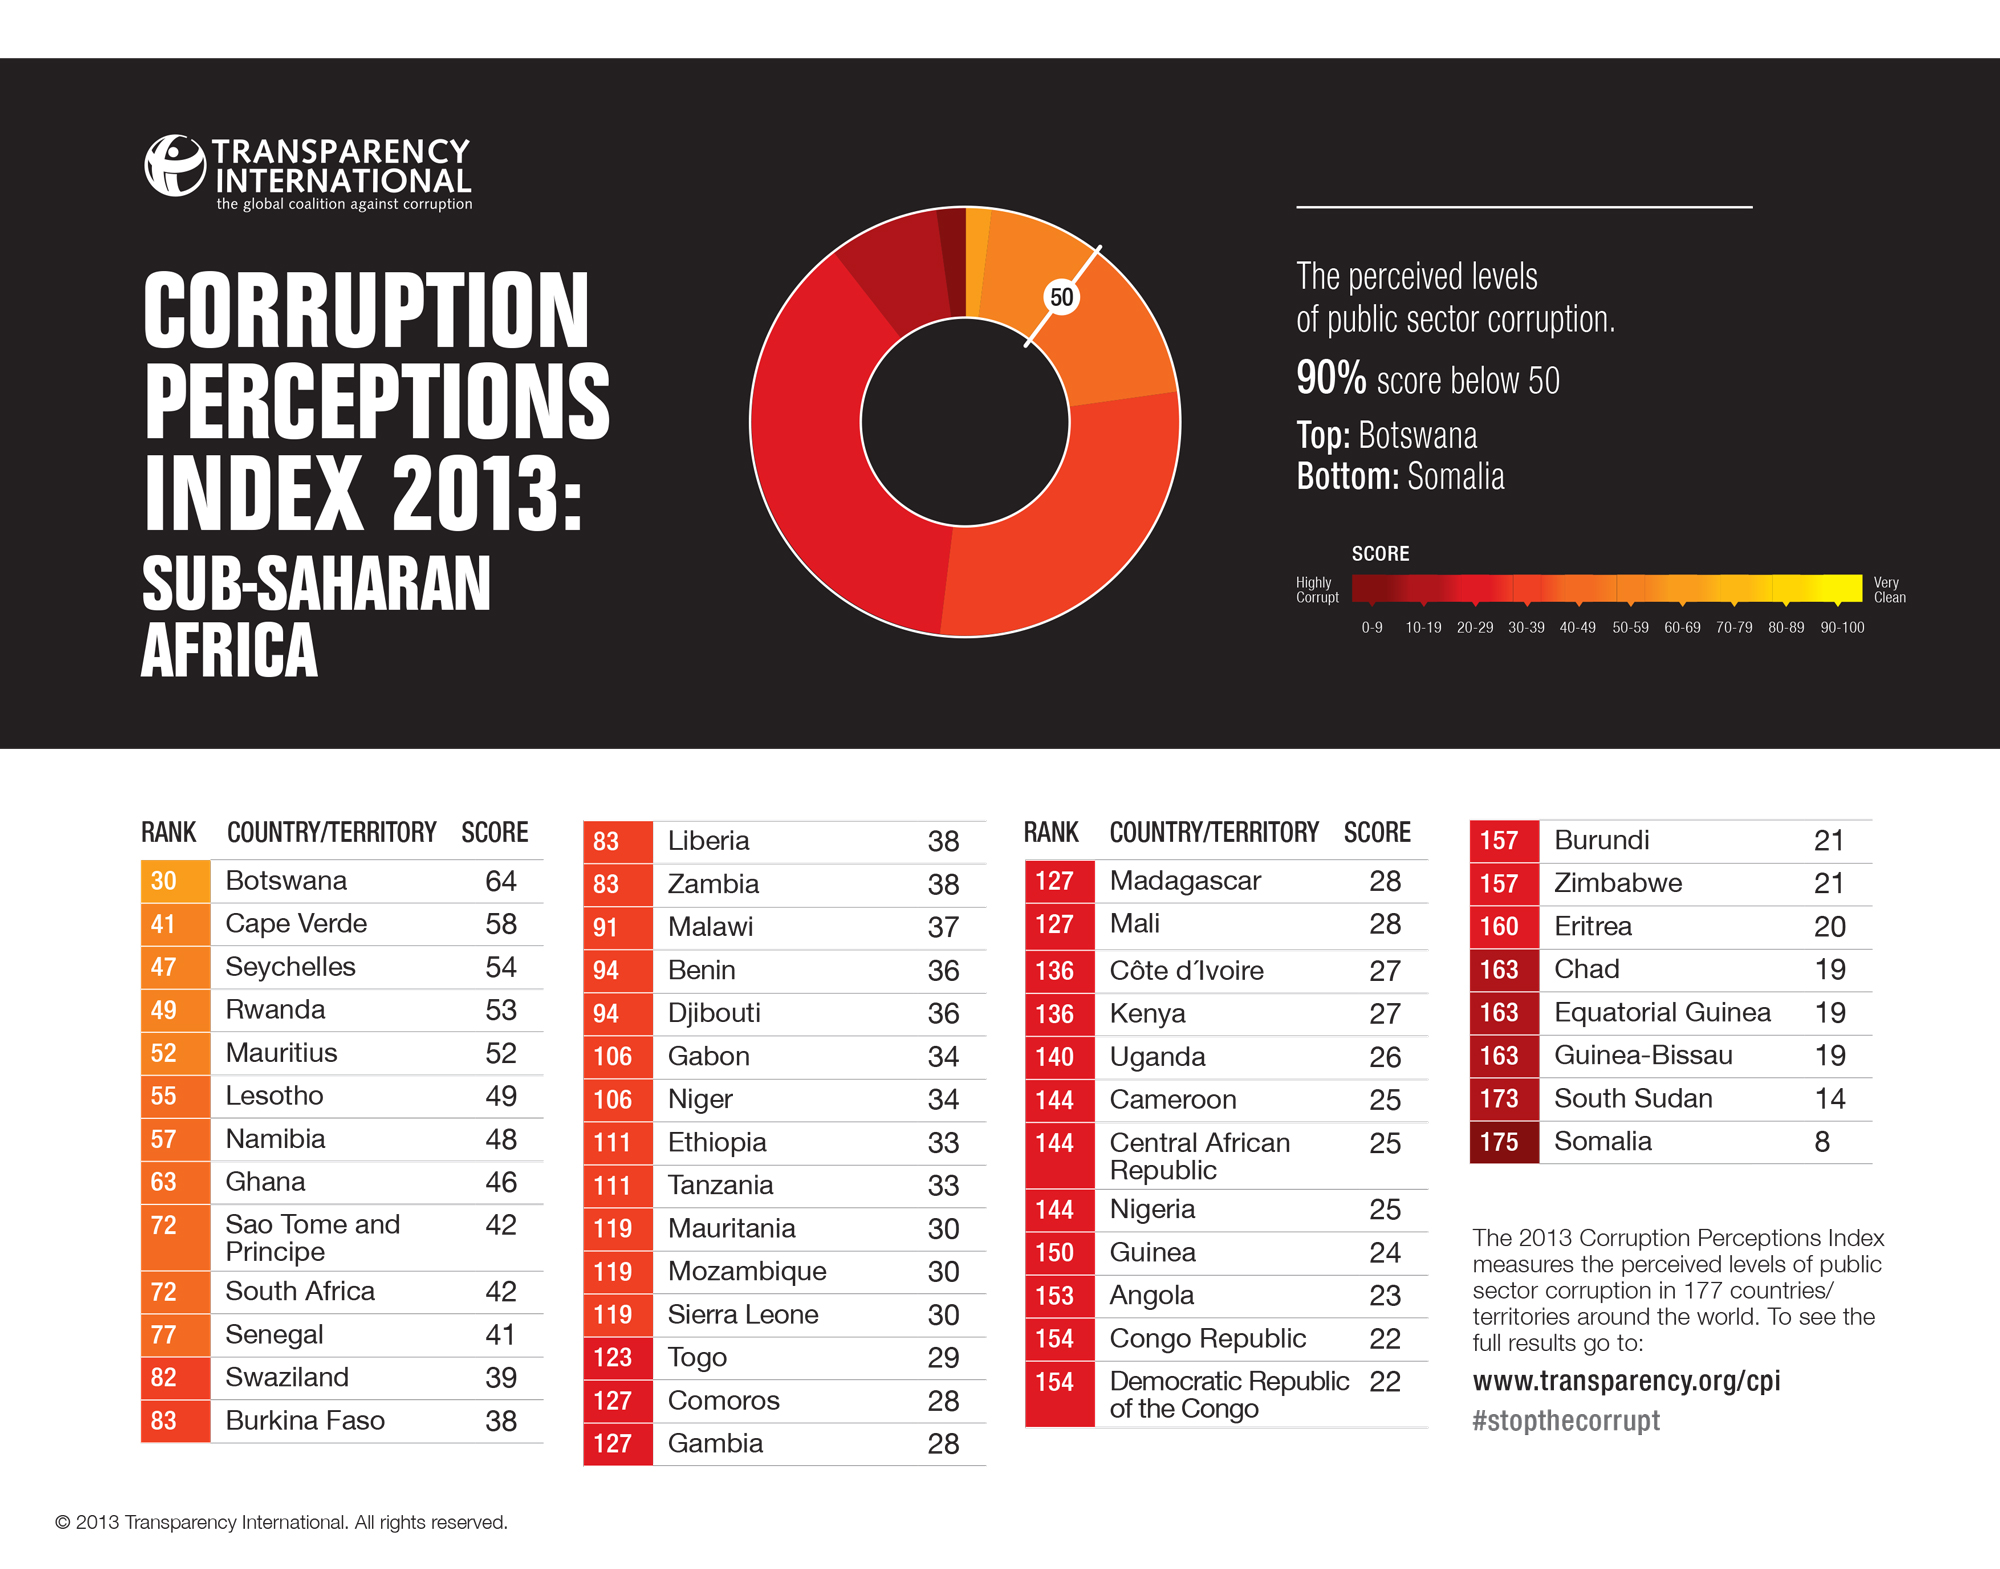 CPI Index 2013 for ssAfrica via Transparency International CC-License-BY